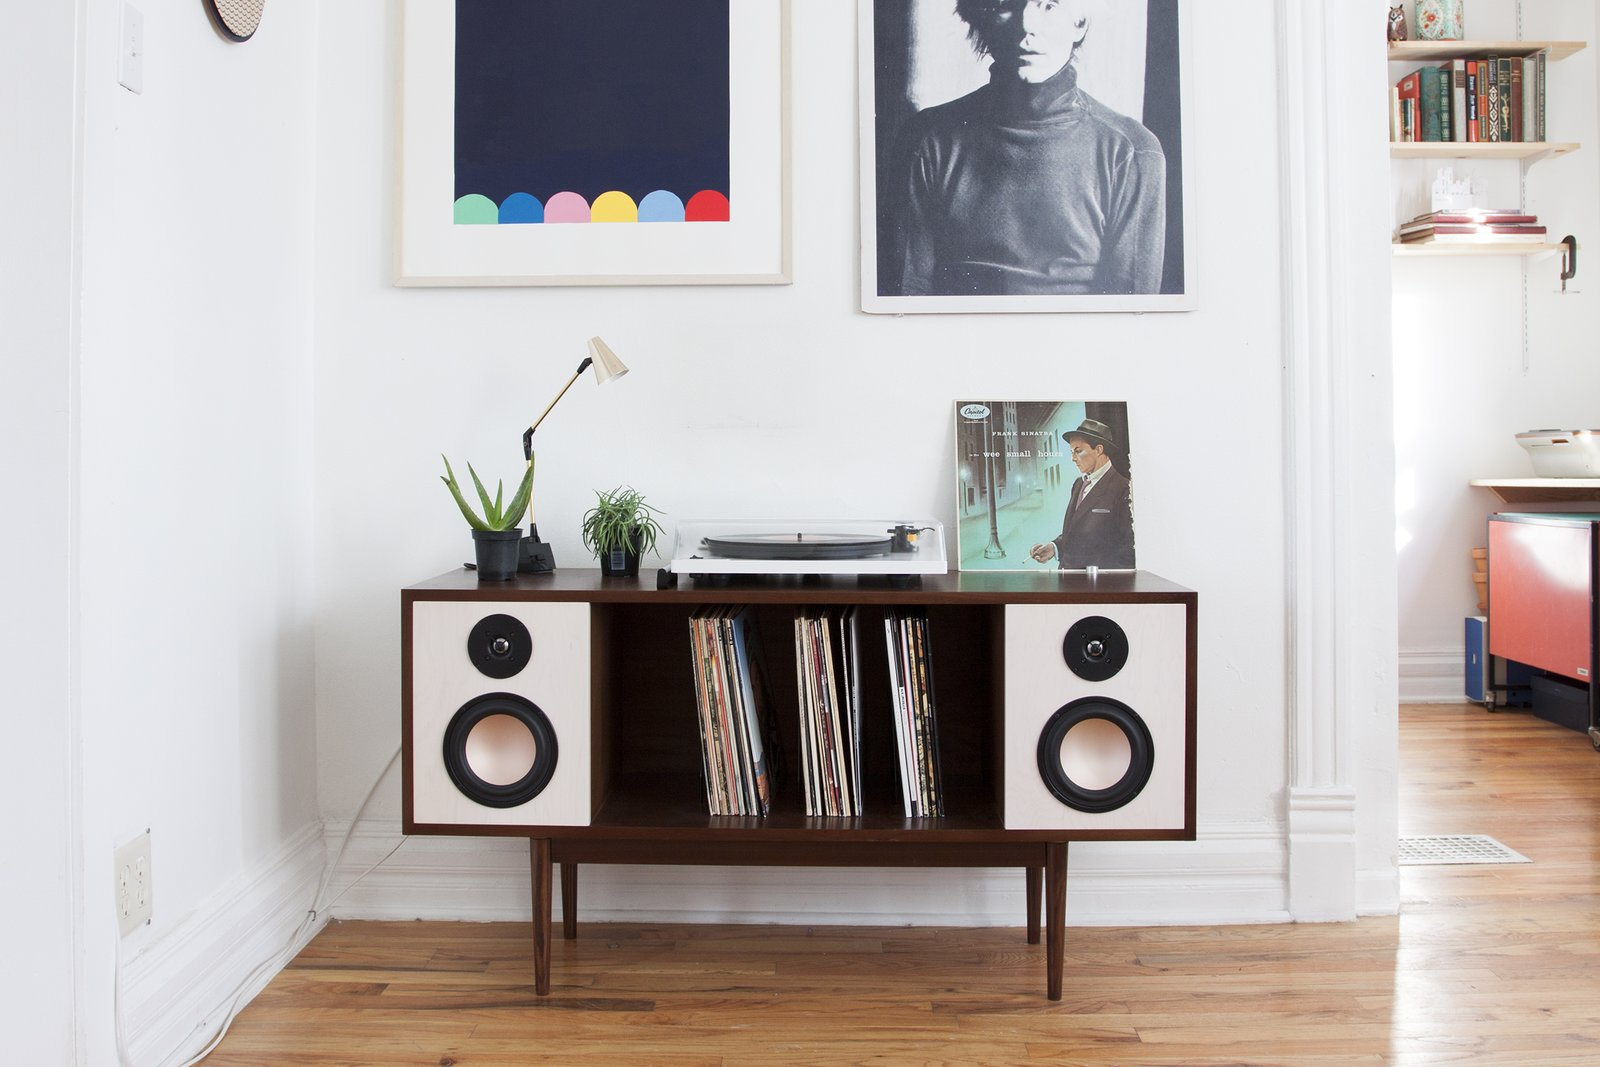 The HiFi Console is a Bluetooth enabled mid-century inspired stereo console. Created by Department Chicago https://www.kickstarter.com/projects/1240320326/the-modern-hifi-stereo-console/description  Sound Style by Stephen Blake